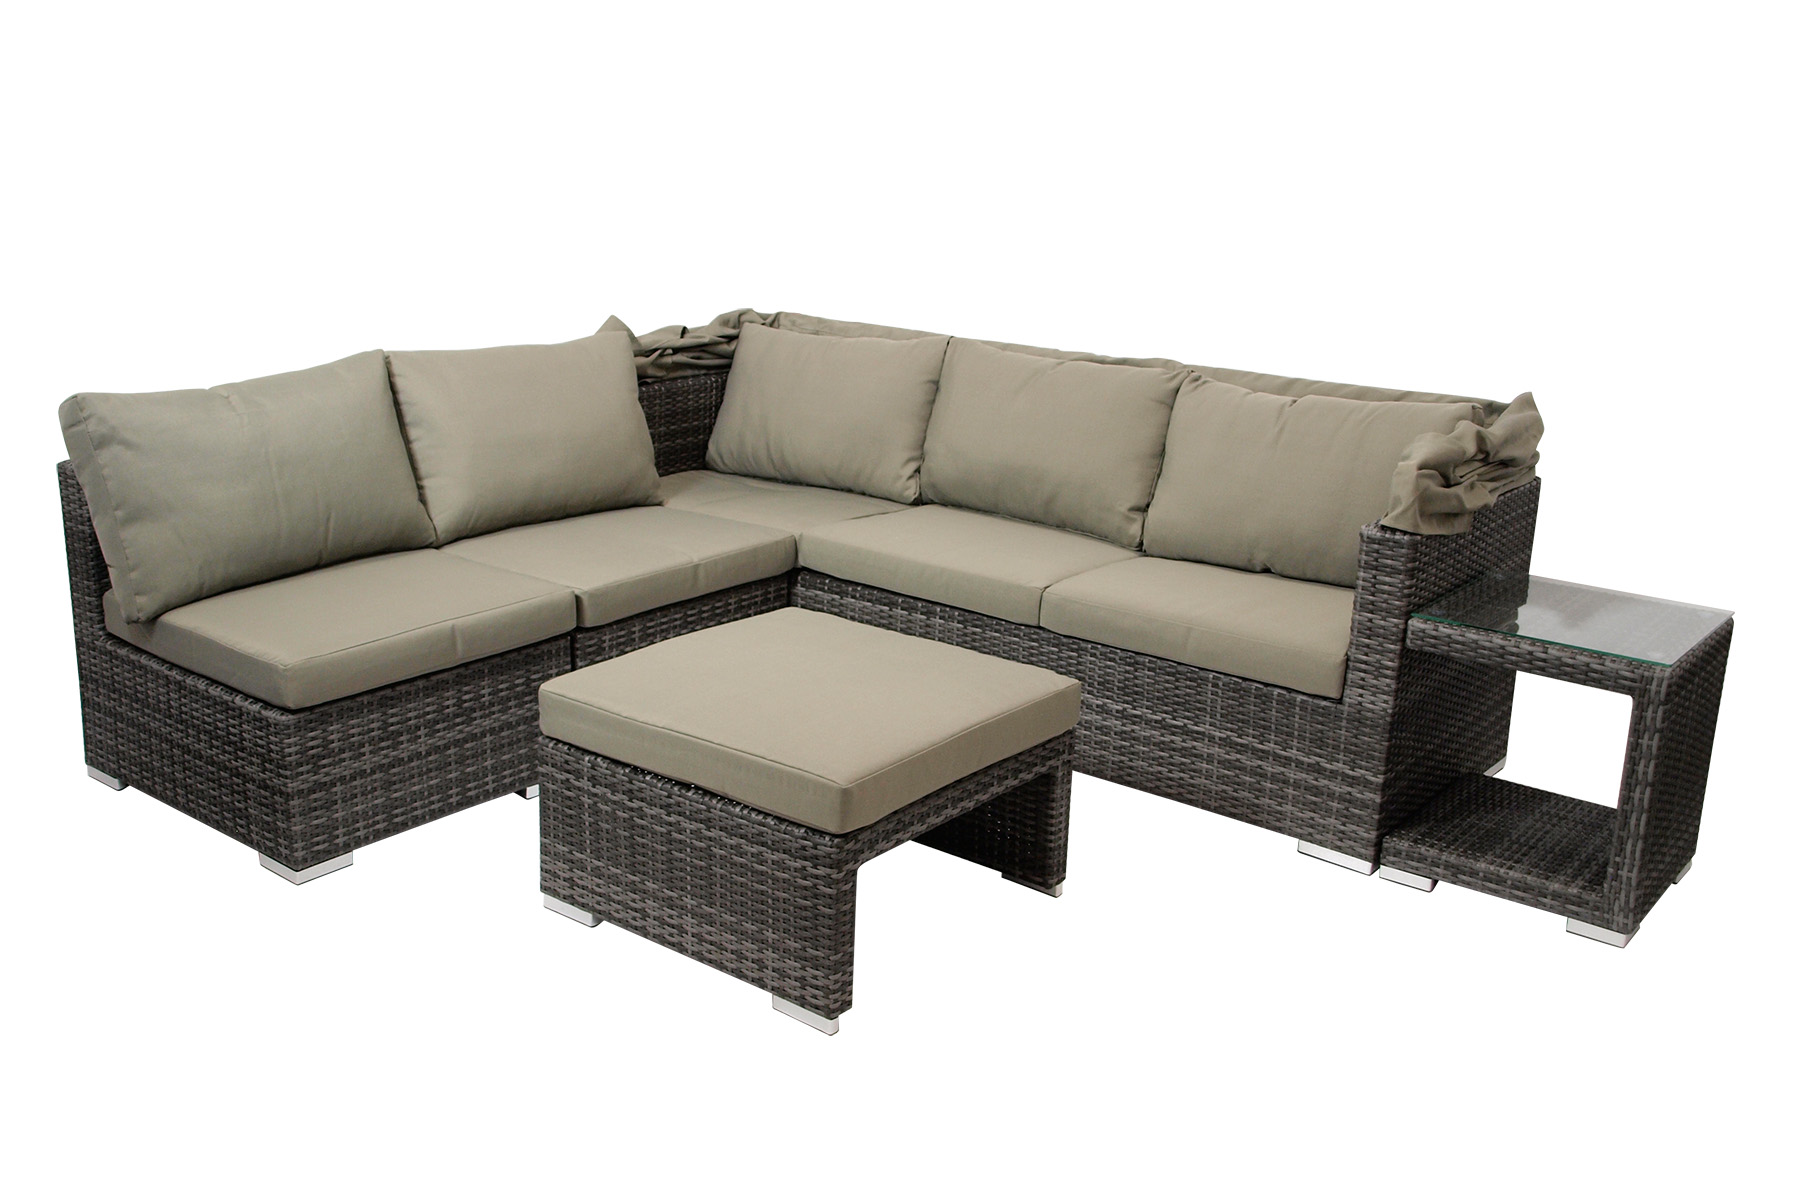 Gartenmöbel Lounge Set Ebay Loungeset Funktions Lounge Set Sofaset Manacor 16 Teilig